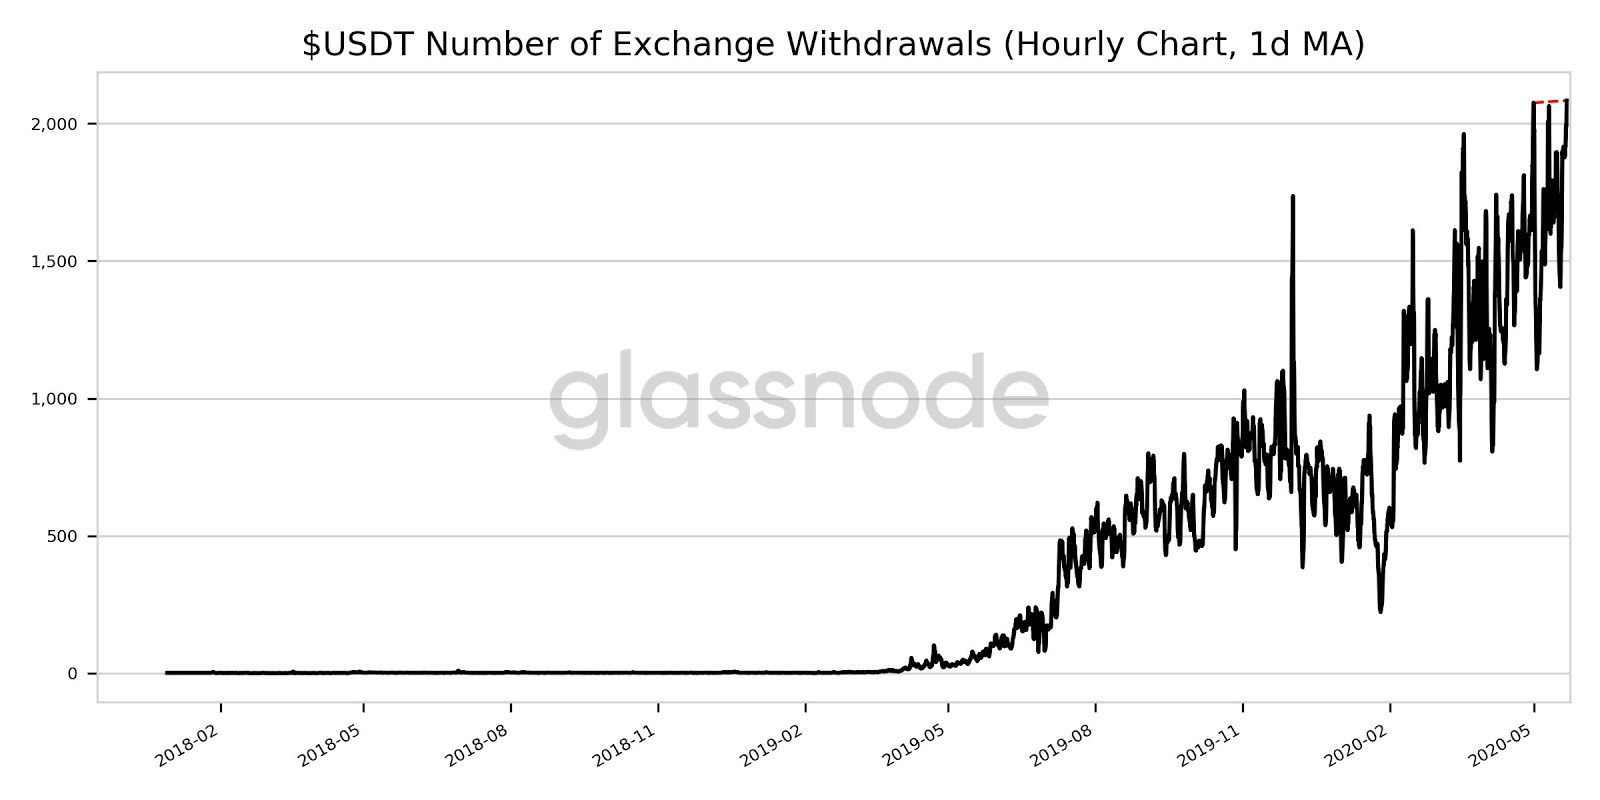 Outflow of Tether (USDT) from cryptocurrency exchanges. Source: glassnode